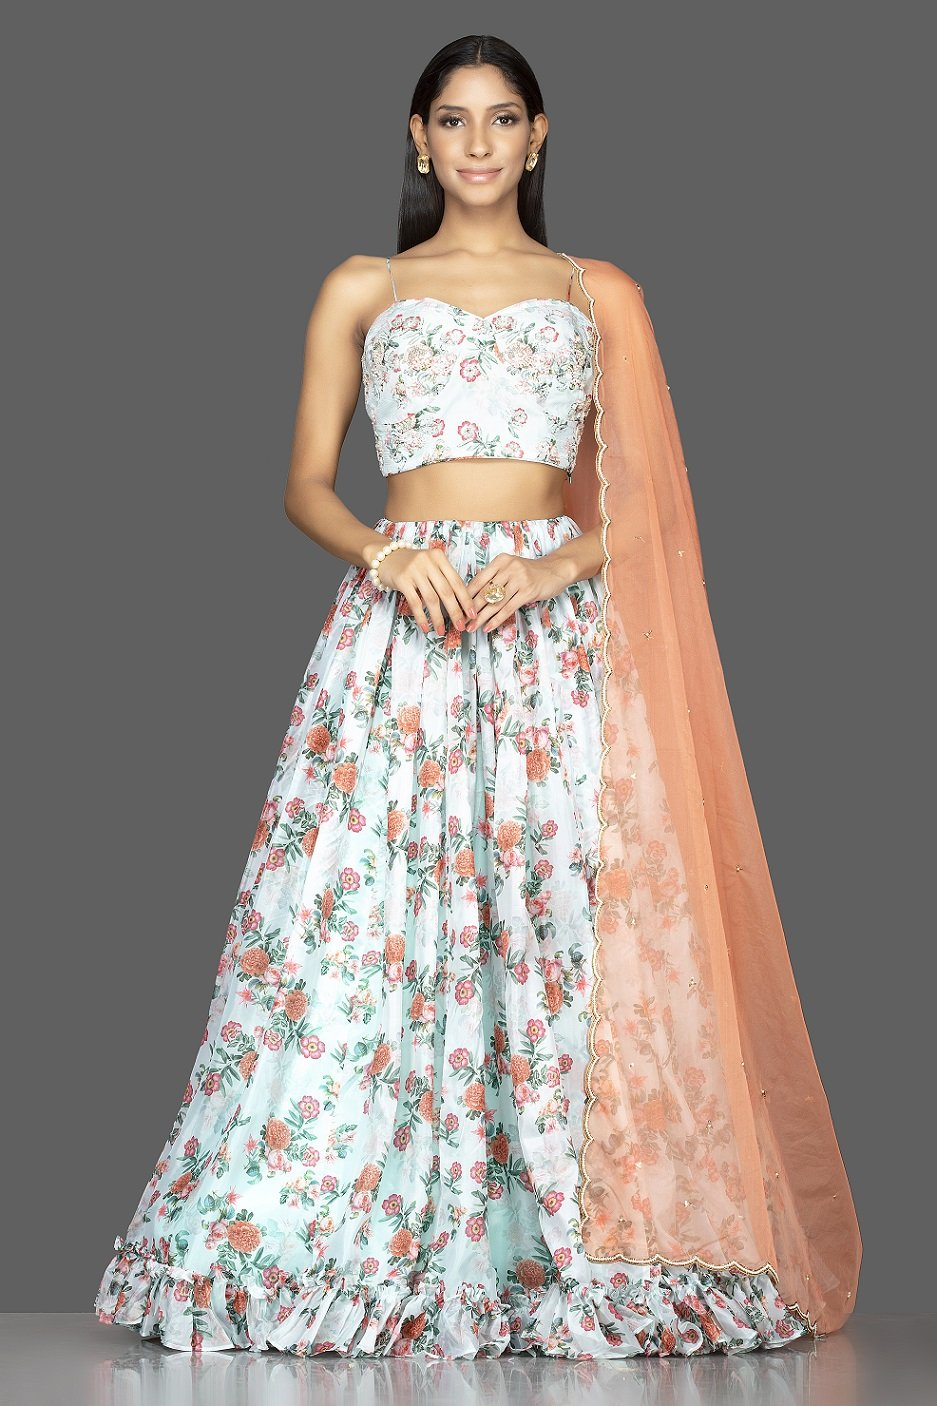 Buy mint green embroidered organza floral lehenga online in USA with peach dupatta. Spread ethnic elegance on weddings and special occasions in splendid designer lehengas, Indowestern dresses crafted with exquisite Indian craftsmanship from Pure Elegance Indian fashion store in USA.-front